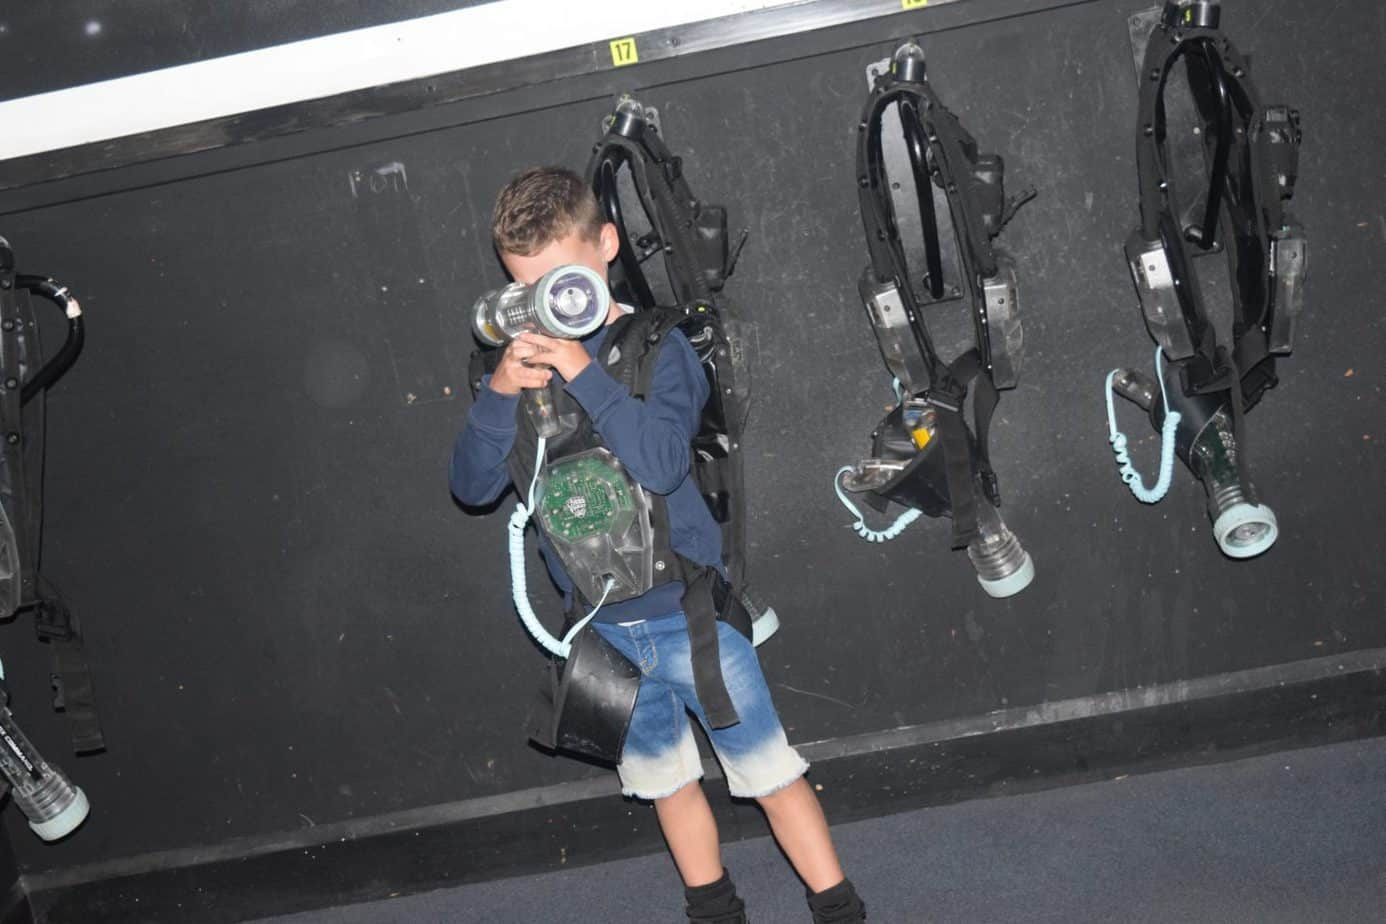 B at Laser Tag, an activity provided by Buckt subscription box. He is holding his infrared blaster